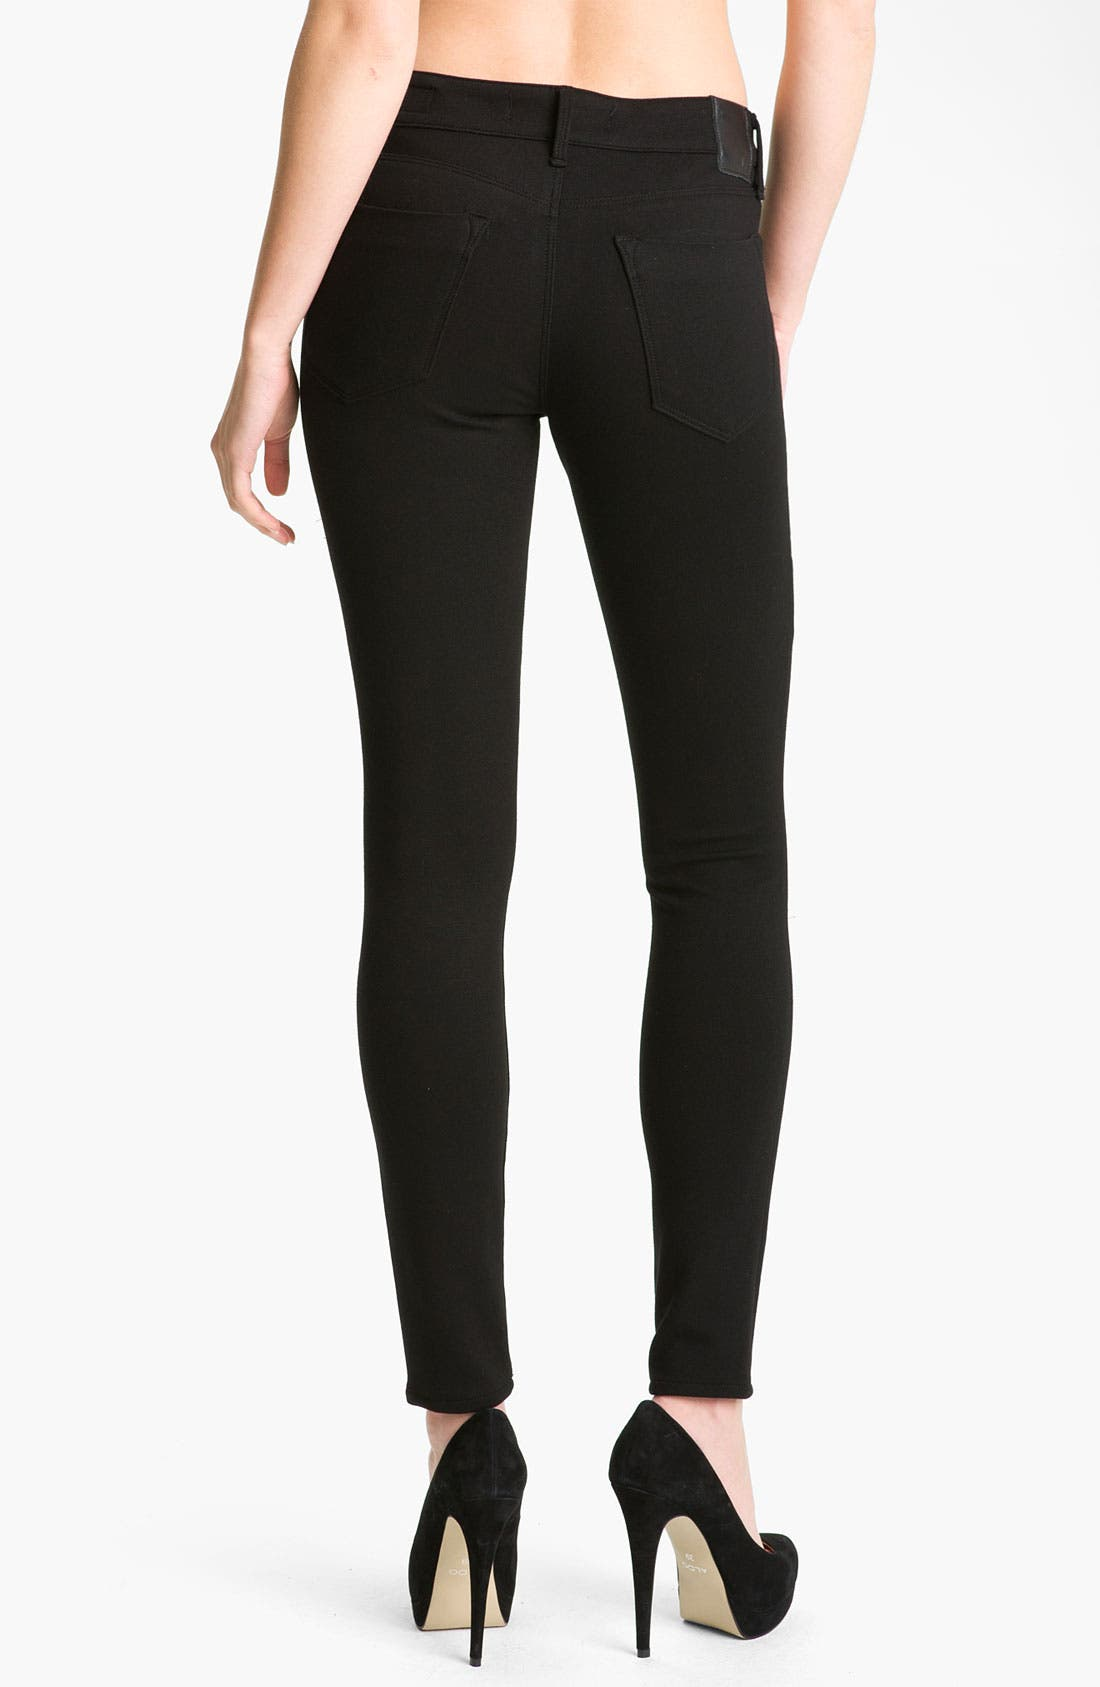 Alternate Image 2  - Dylan George 'Runway' Mid Rise Stretch Knit Leggings